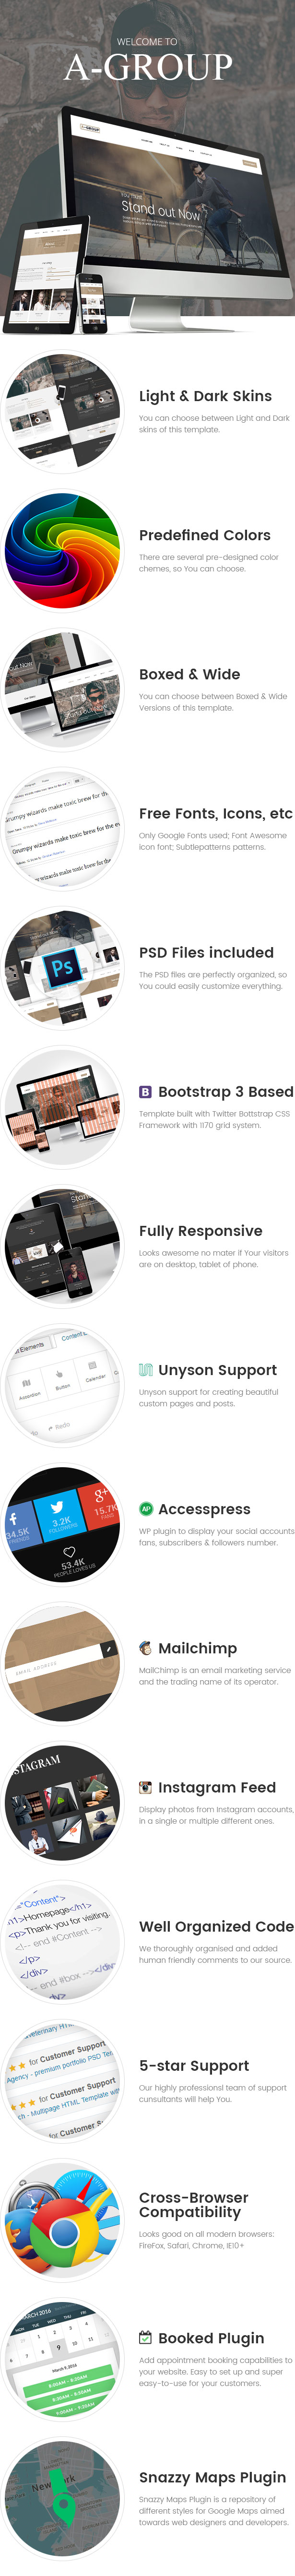 A-Group - Corporate & Business Company WordPress theme